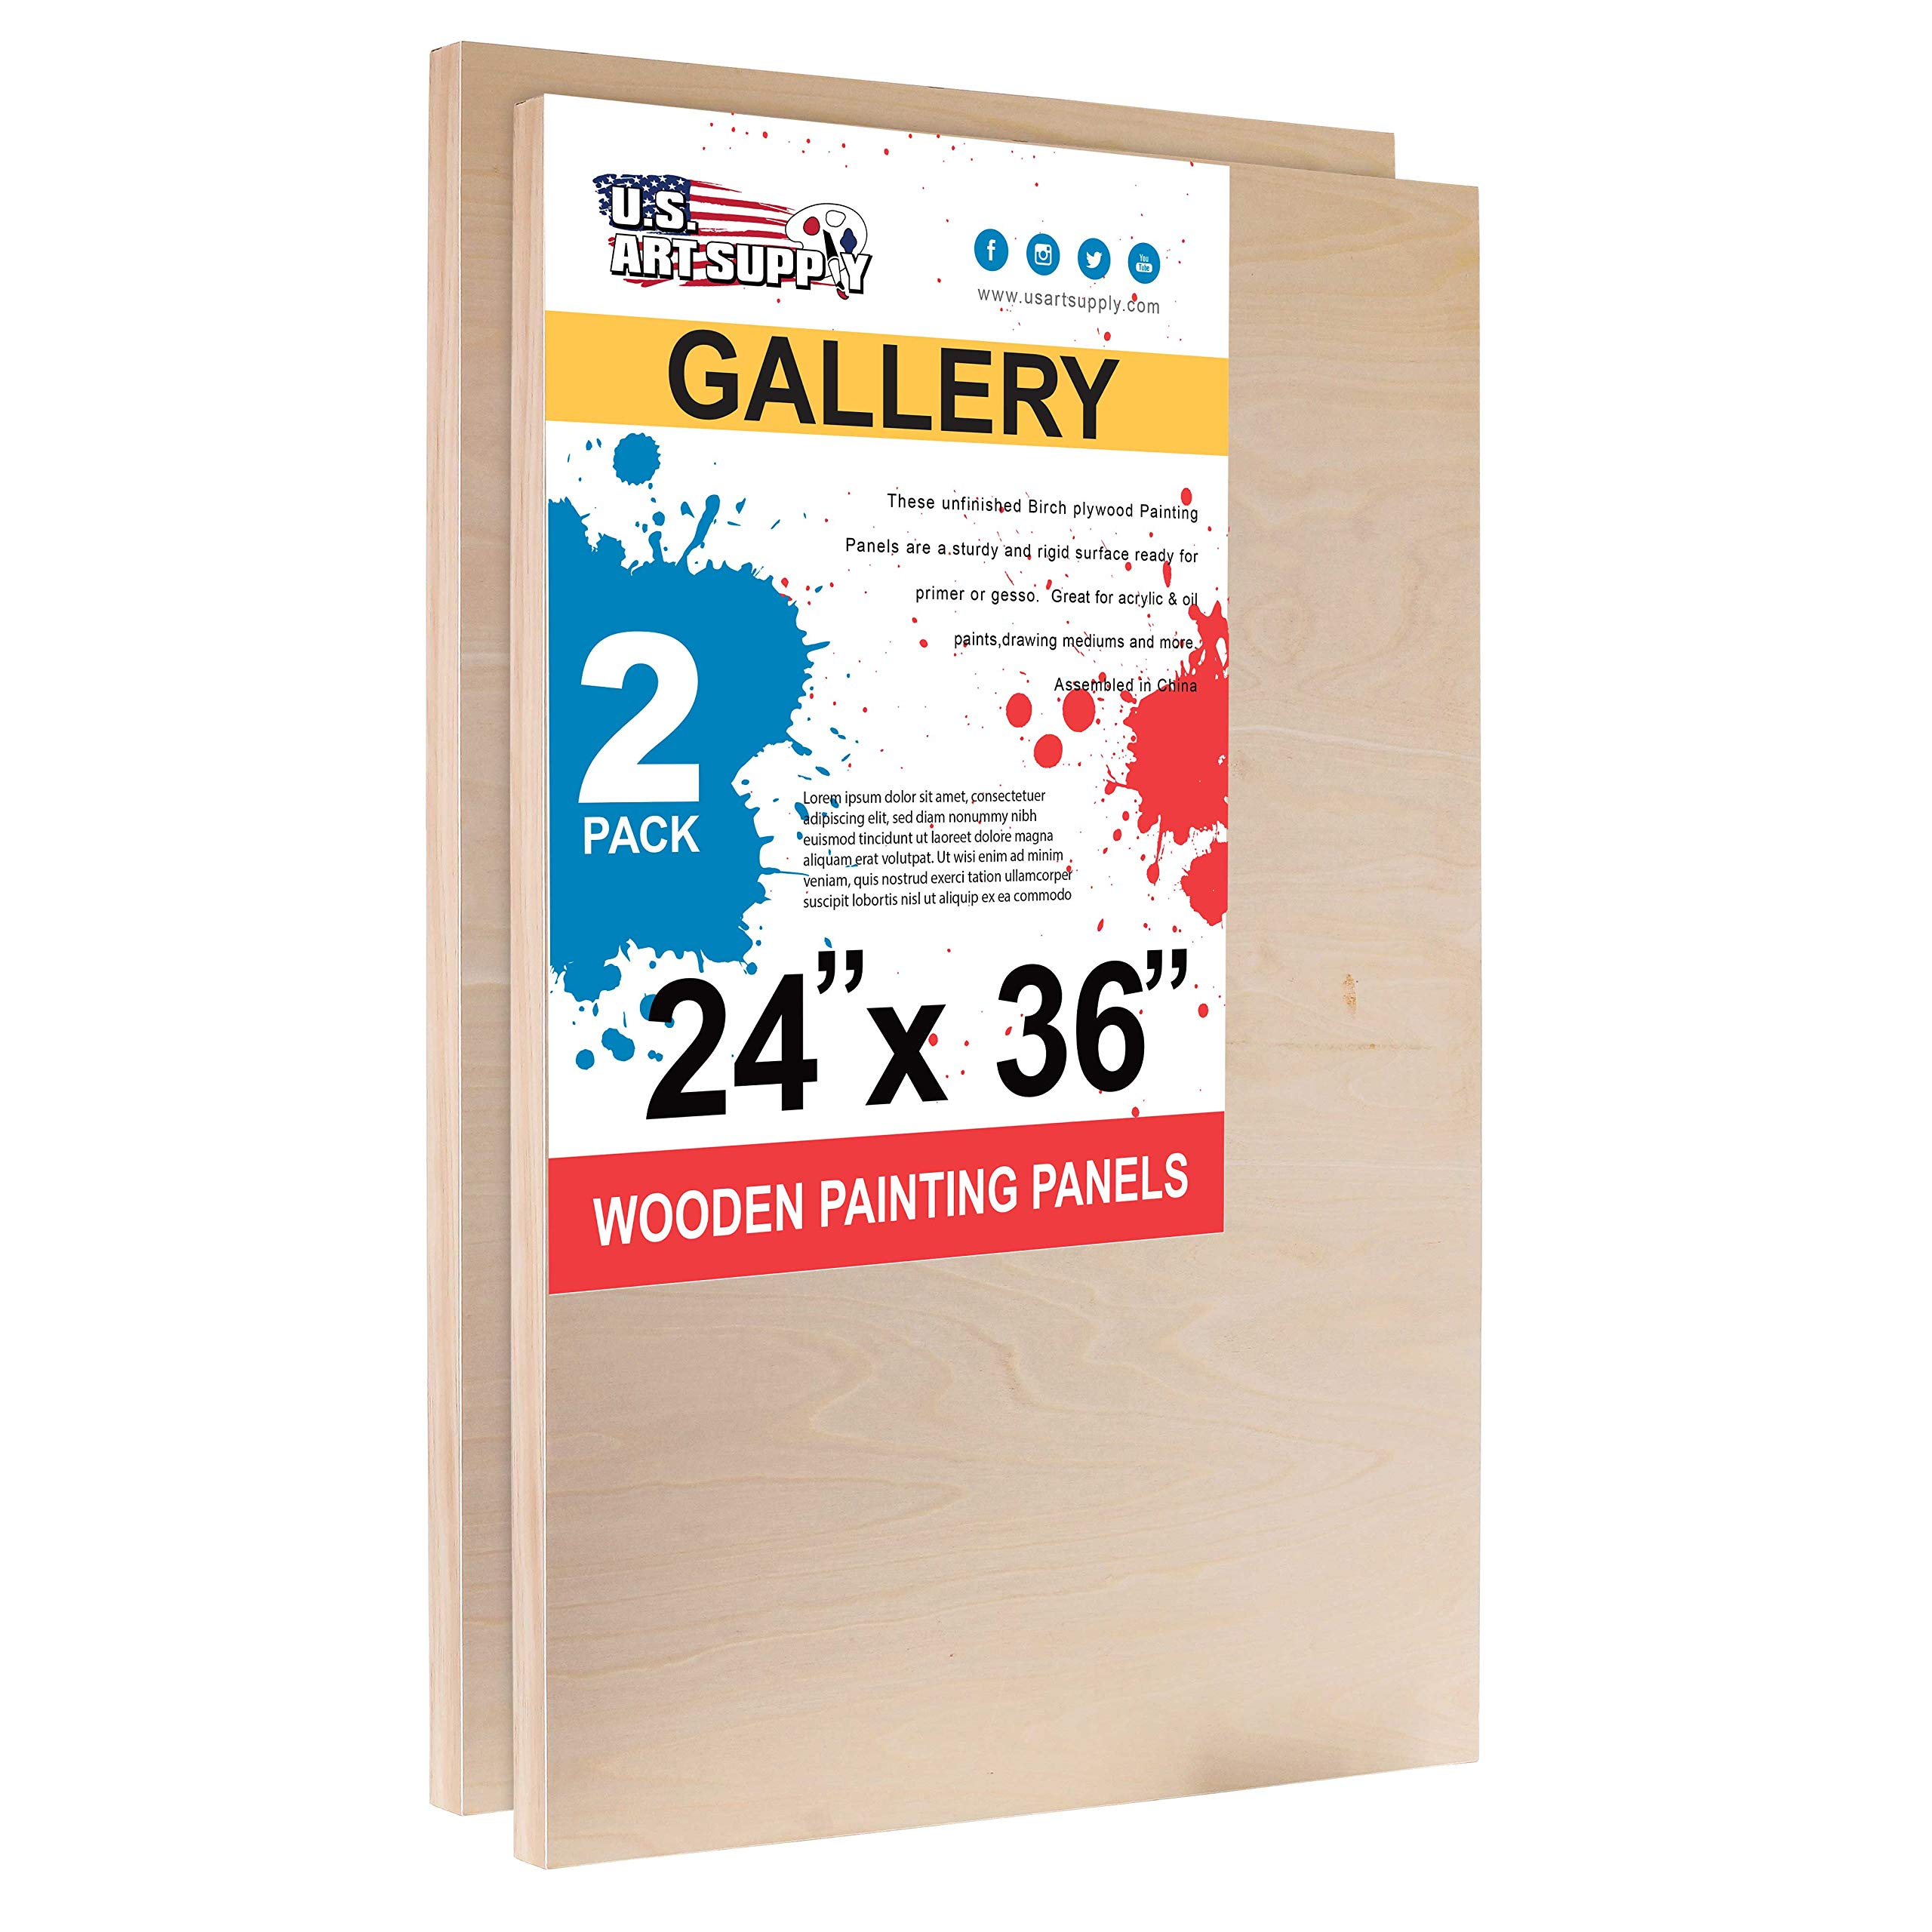 U.S. Art Supply 24'' x 36'' Birch Wood Paint Pouring Panel Boards, Gallery 1-1/2'' Deep Cradle (Pack of 2) - Artist Depth Wooden Wall Canvases - Painting Mixed-Media Craft, Acrylic, Oil, Encaustic by U.S. Art Supply